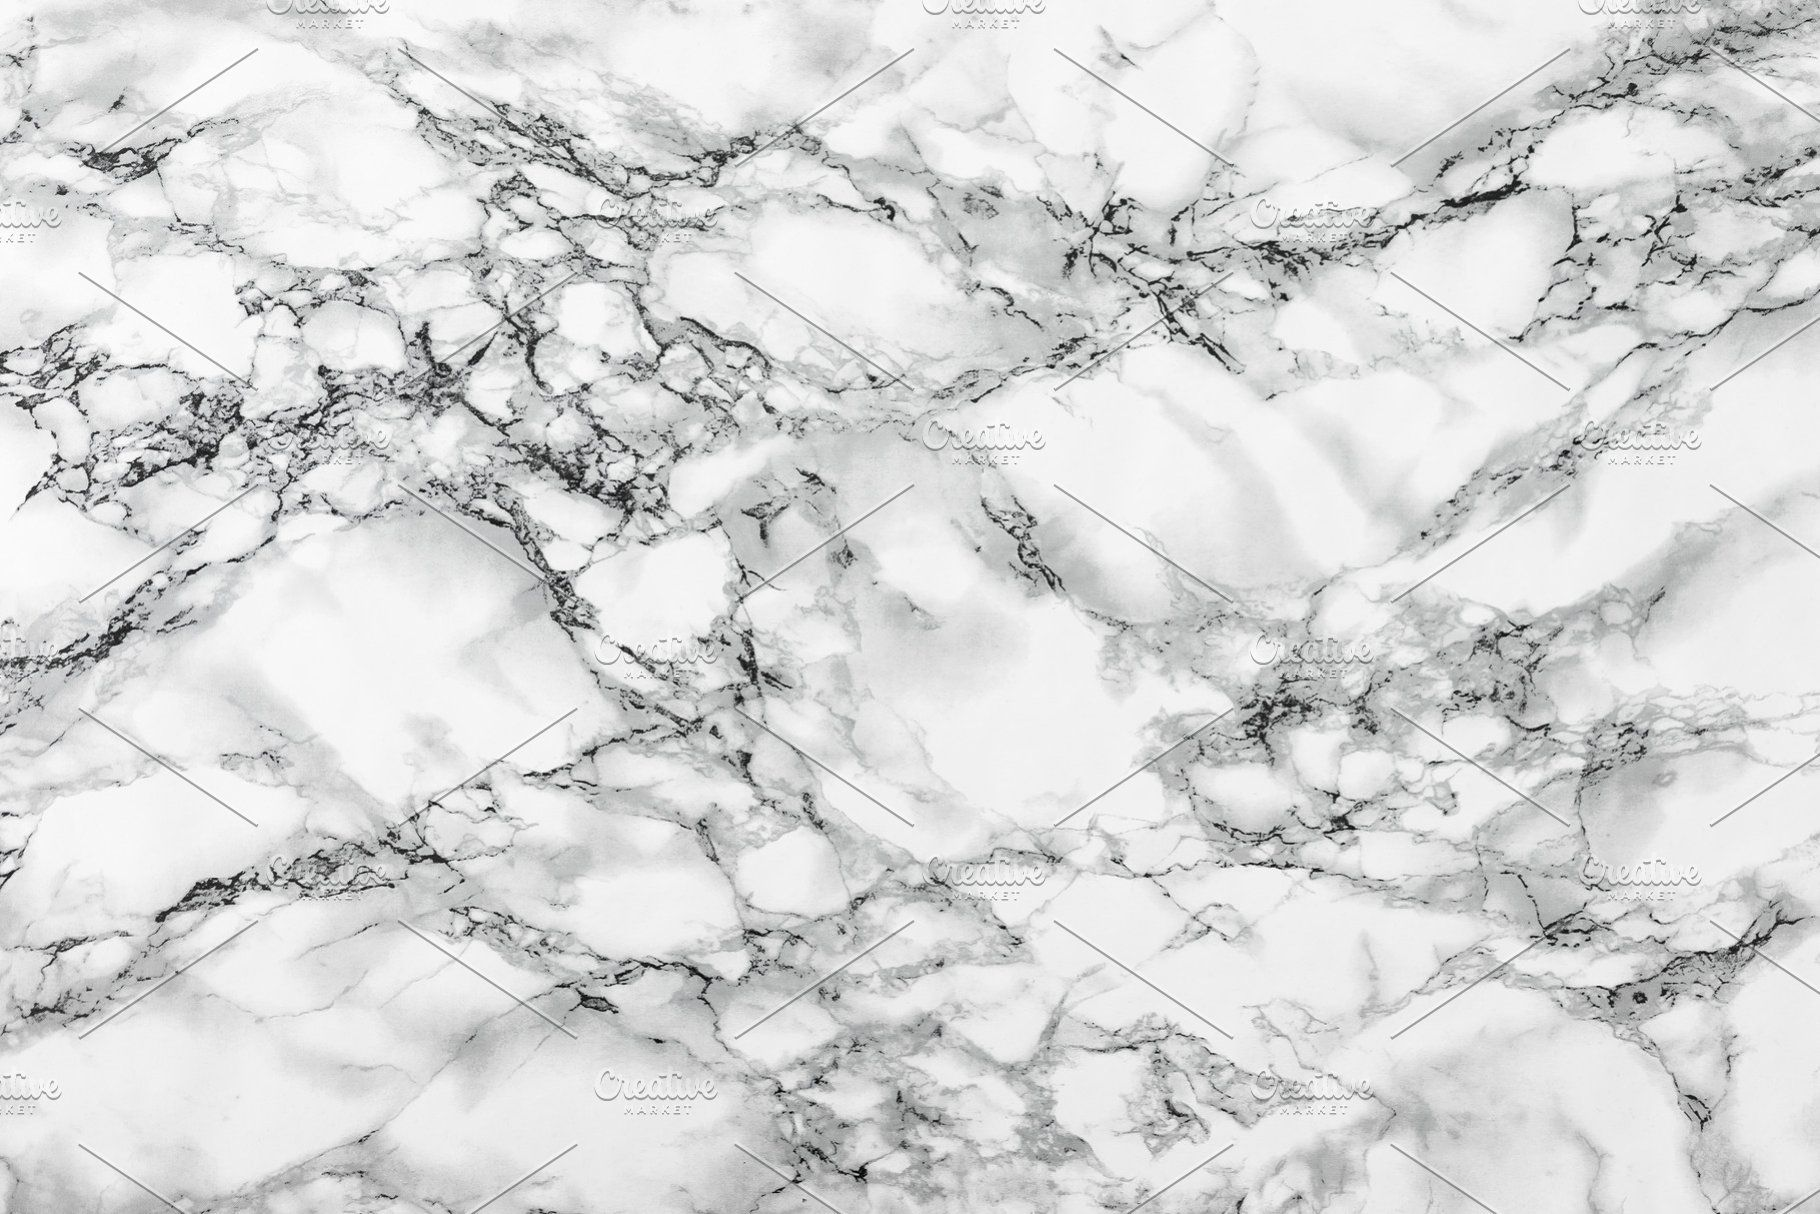 Black Marble Background Patter Black Marble Background Marble Background Laptop Wallpaper Desktop Wallpapers